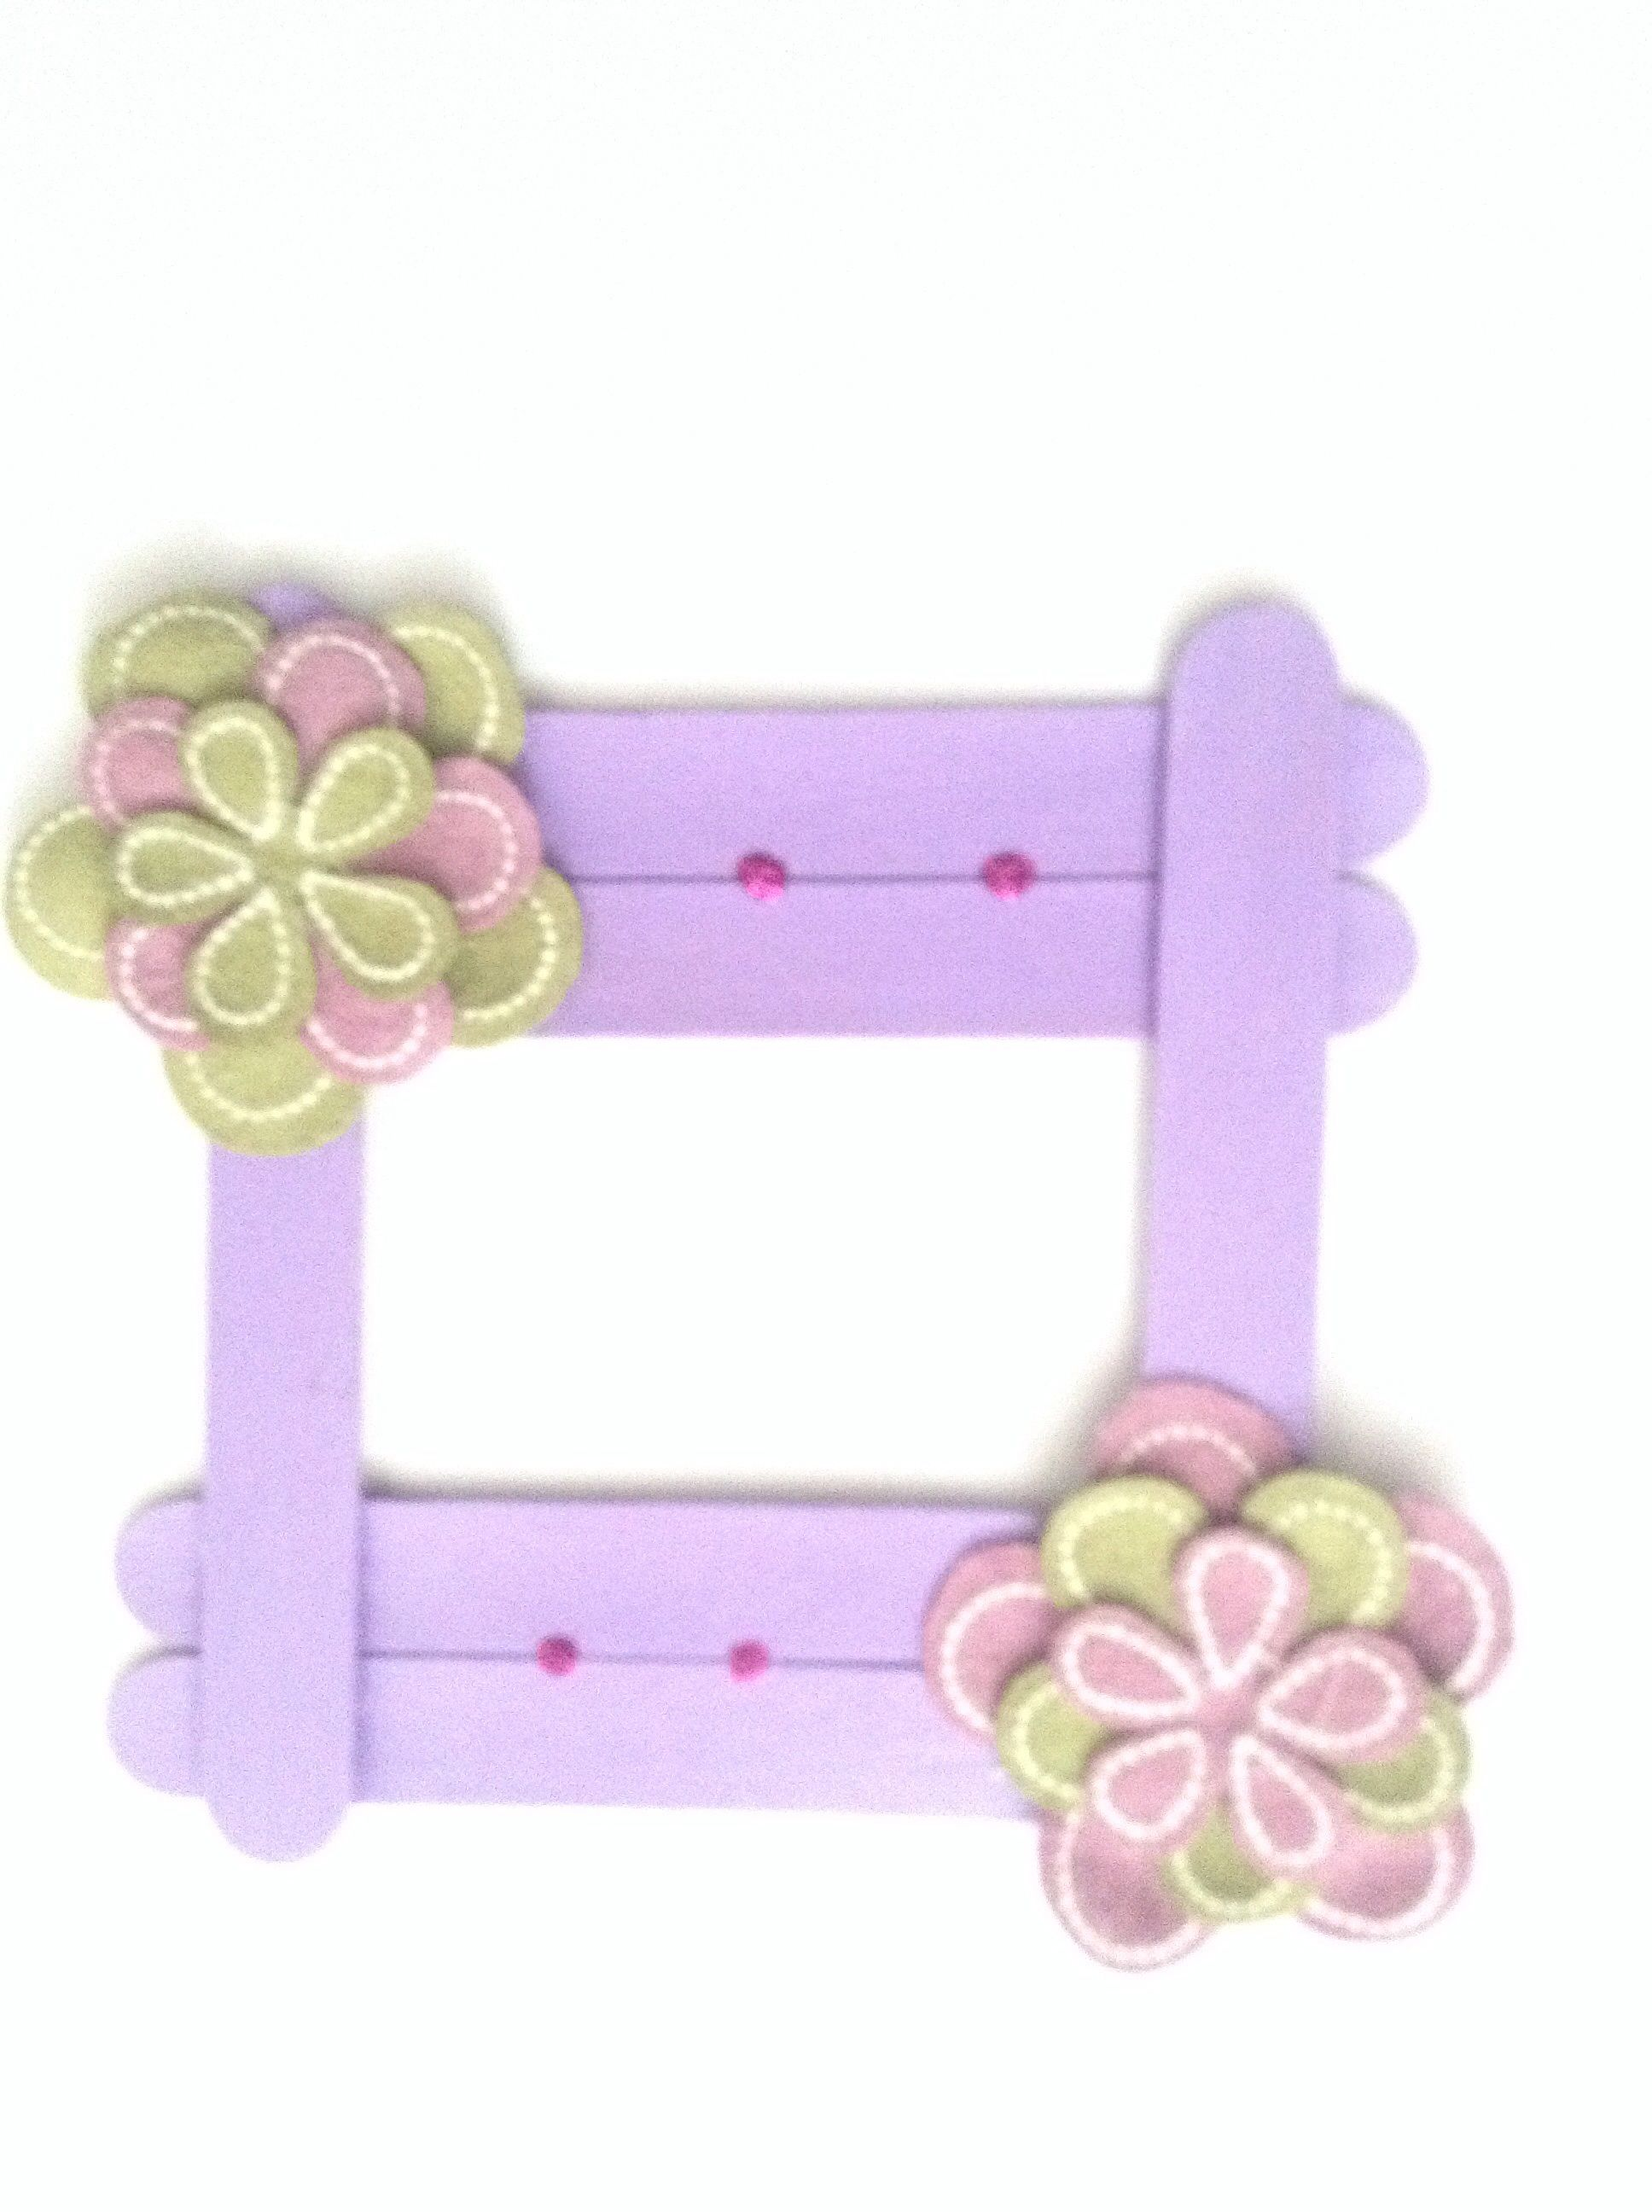 Craft stick photo frame, another example   popsicle sticks ...